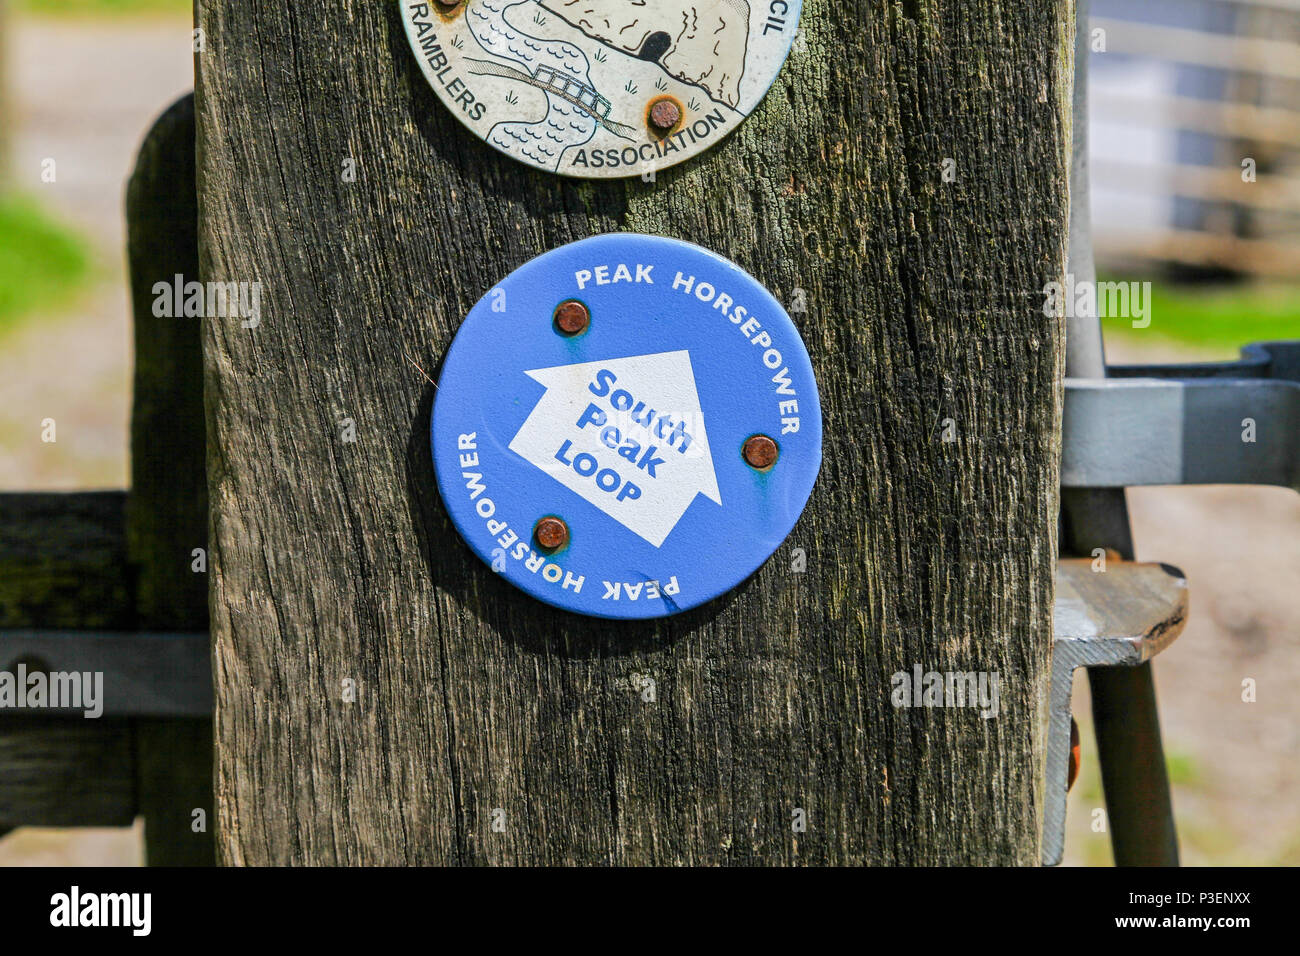 A direction sign on a wooden post for the Peak Horsepower, South Peak Loop, Staffordshire, England, UK - Stock Image